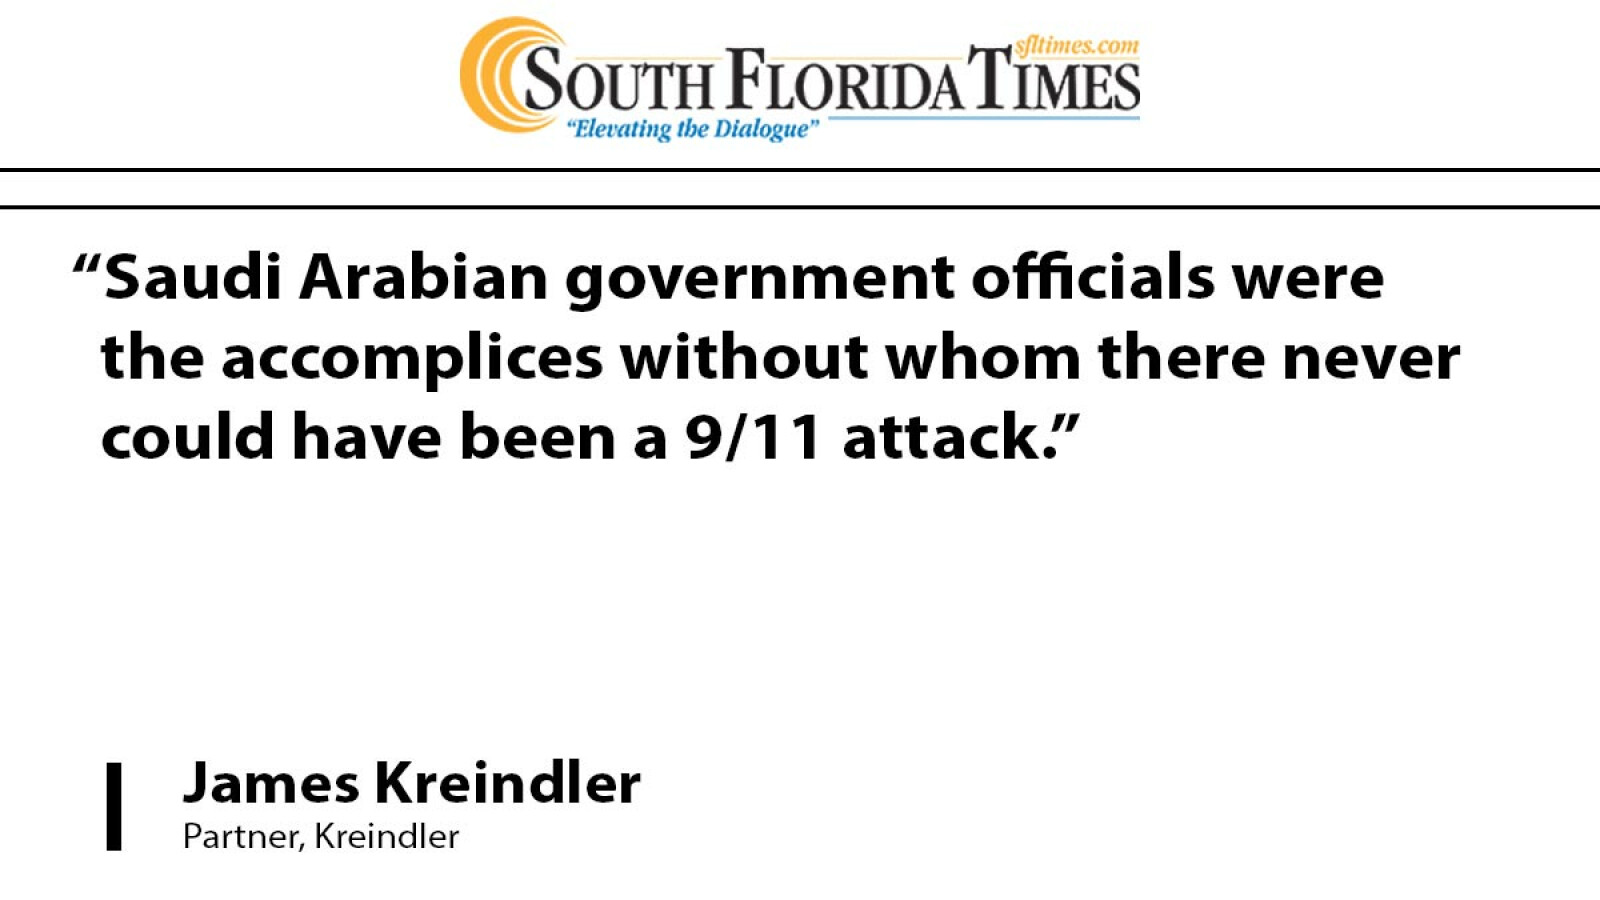 Partner James P. Kreindler identifies Saudi officials as 9/11 accomplices in the South Florida Times